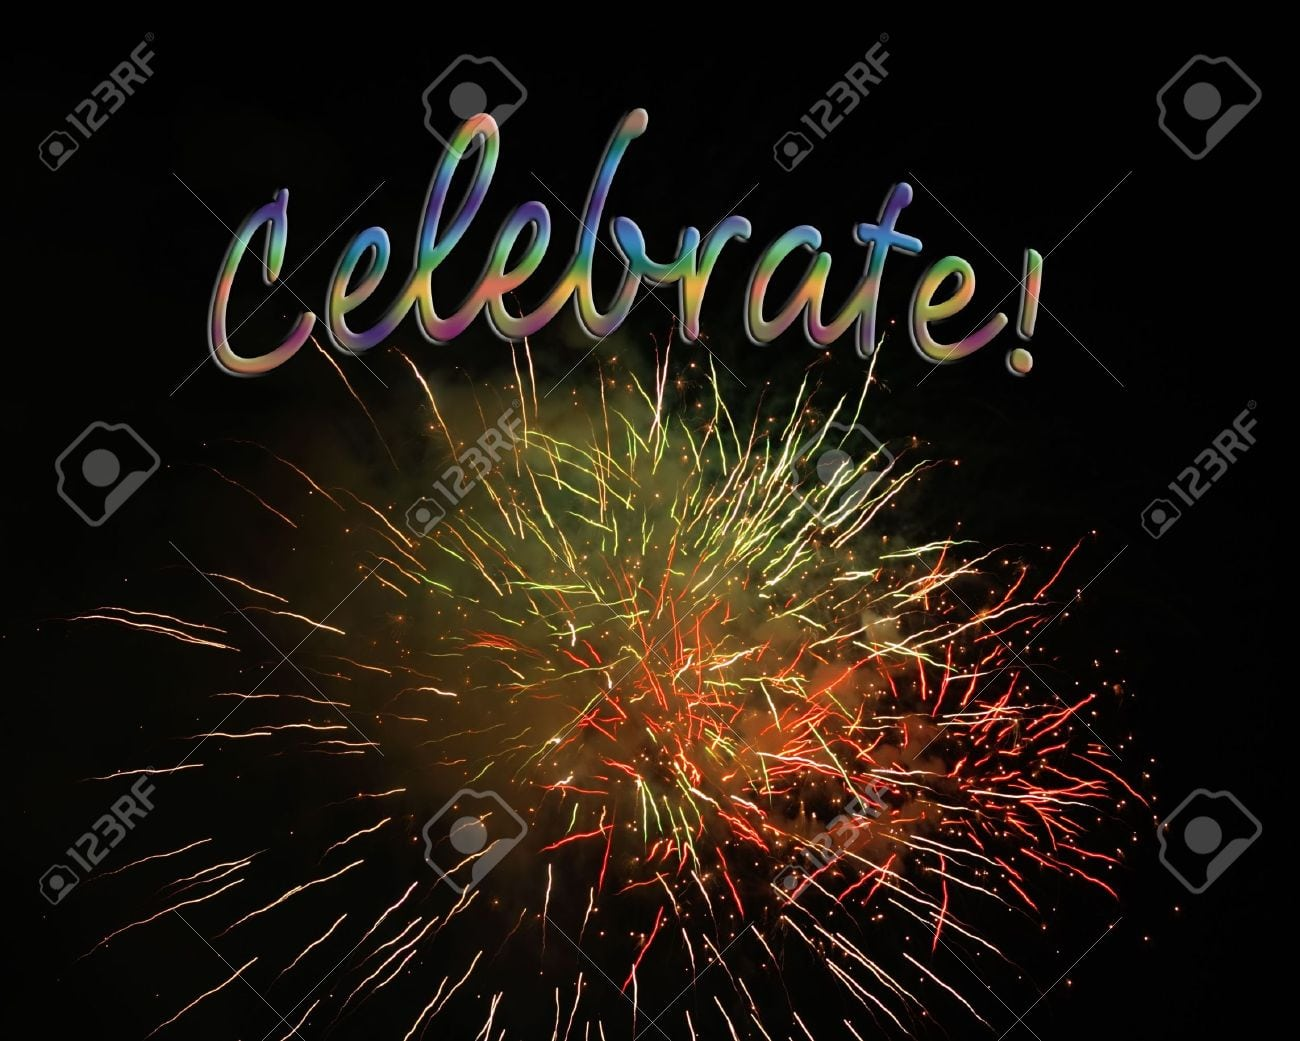 Fireworks Display With Celebrate Text, Good For Party Invitations